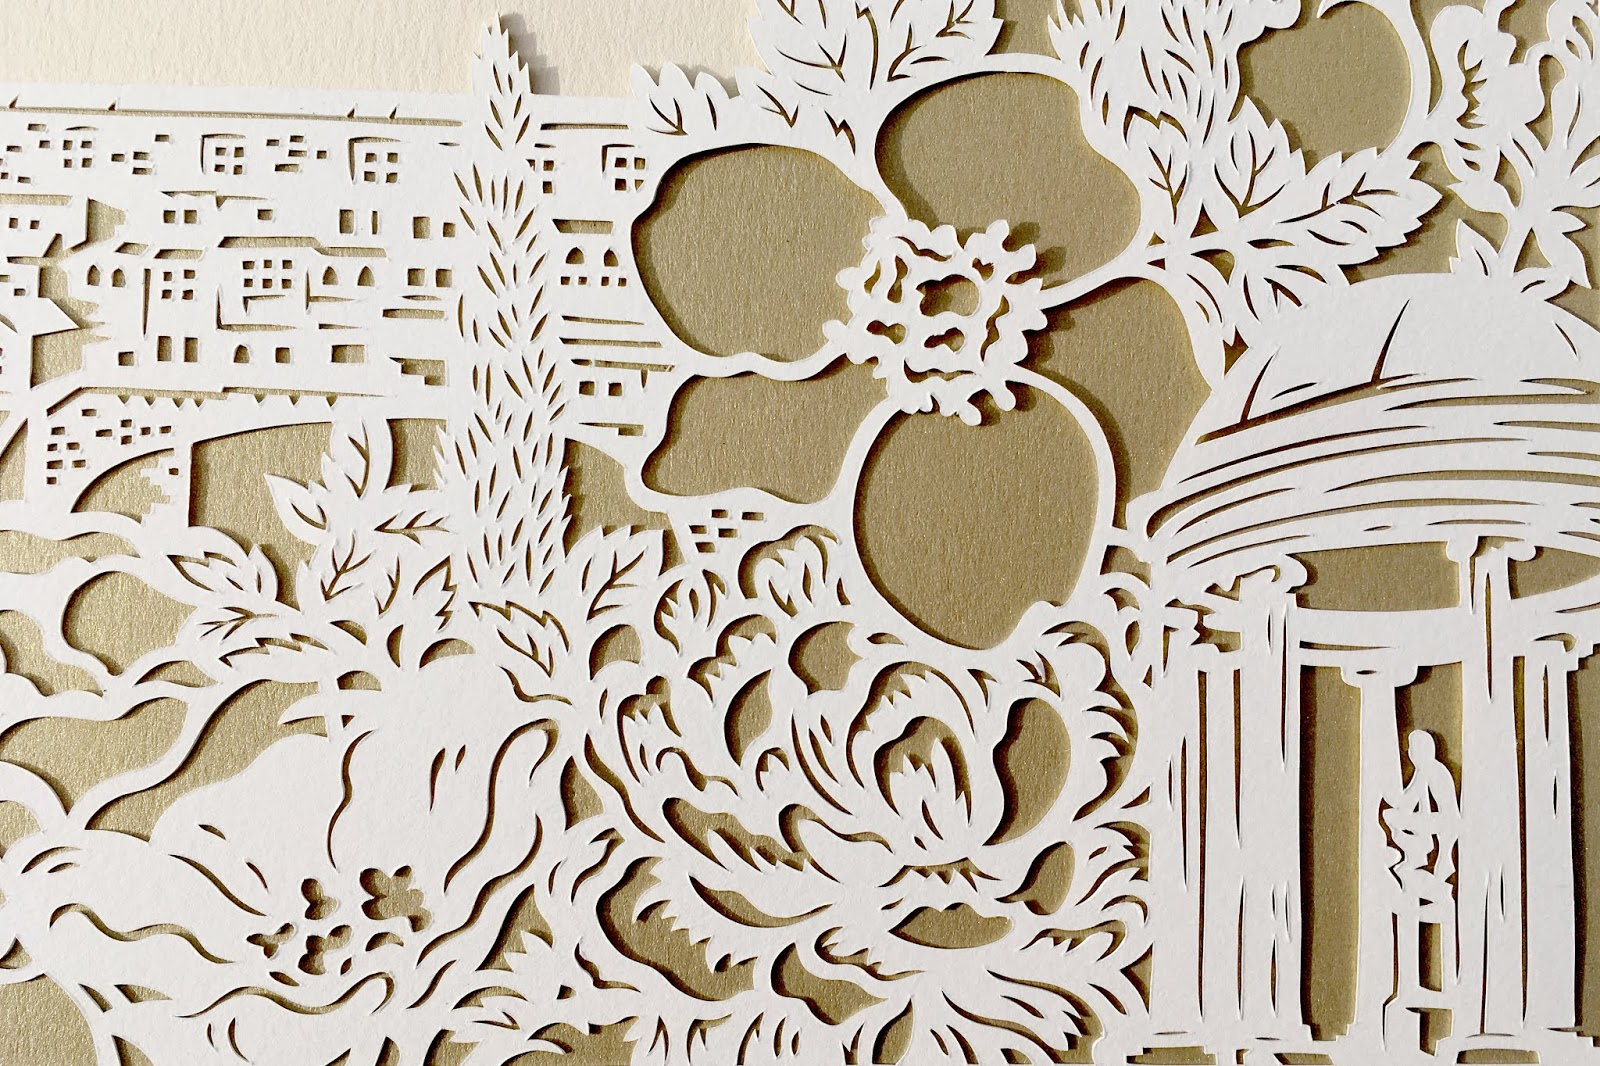 Handmade custom papercut gift for destination wedding to Florence, Italy. By Woodland Papercuts by Naomi Shiek.